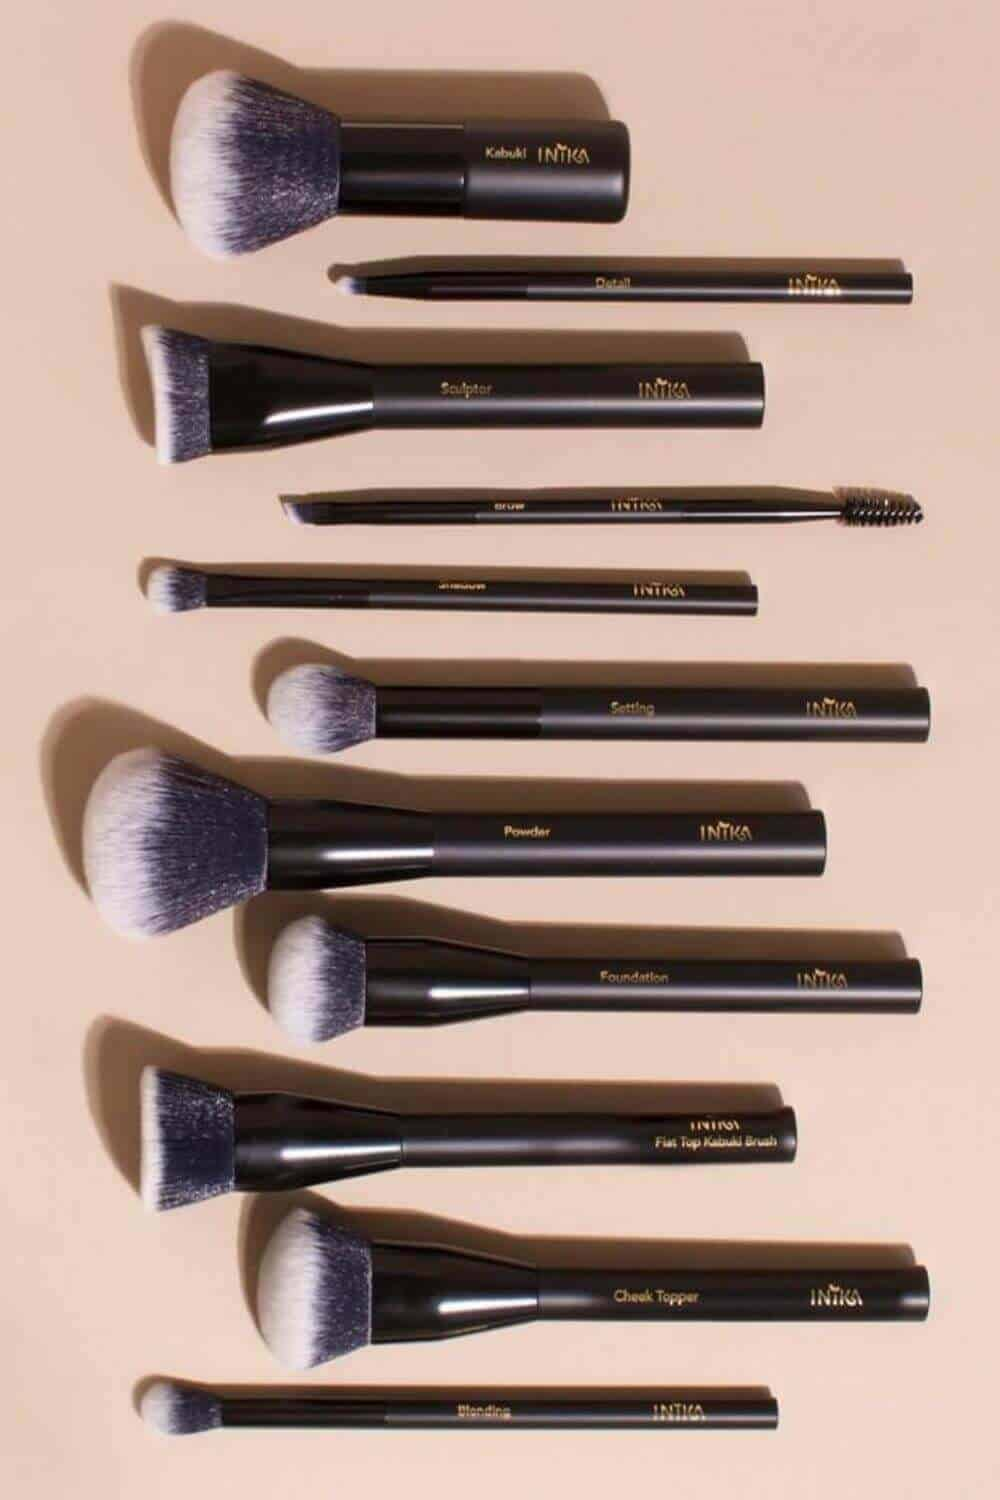 We've sought out the best cruelty free vegan makeup brushes to give you the tools (literally) to make your ENTIRE makeup routine absent the animals. Image by Inika Organic #veganmakeupbrushes #sustainablejungle